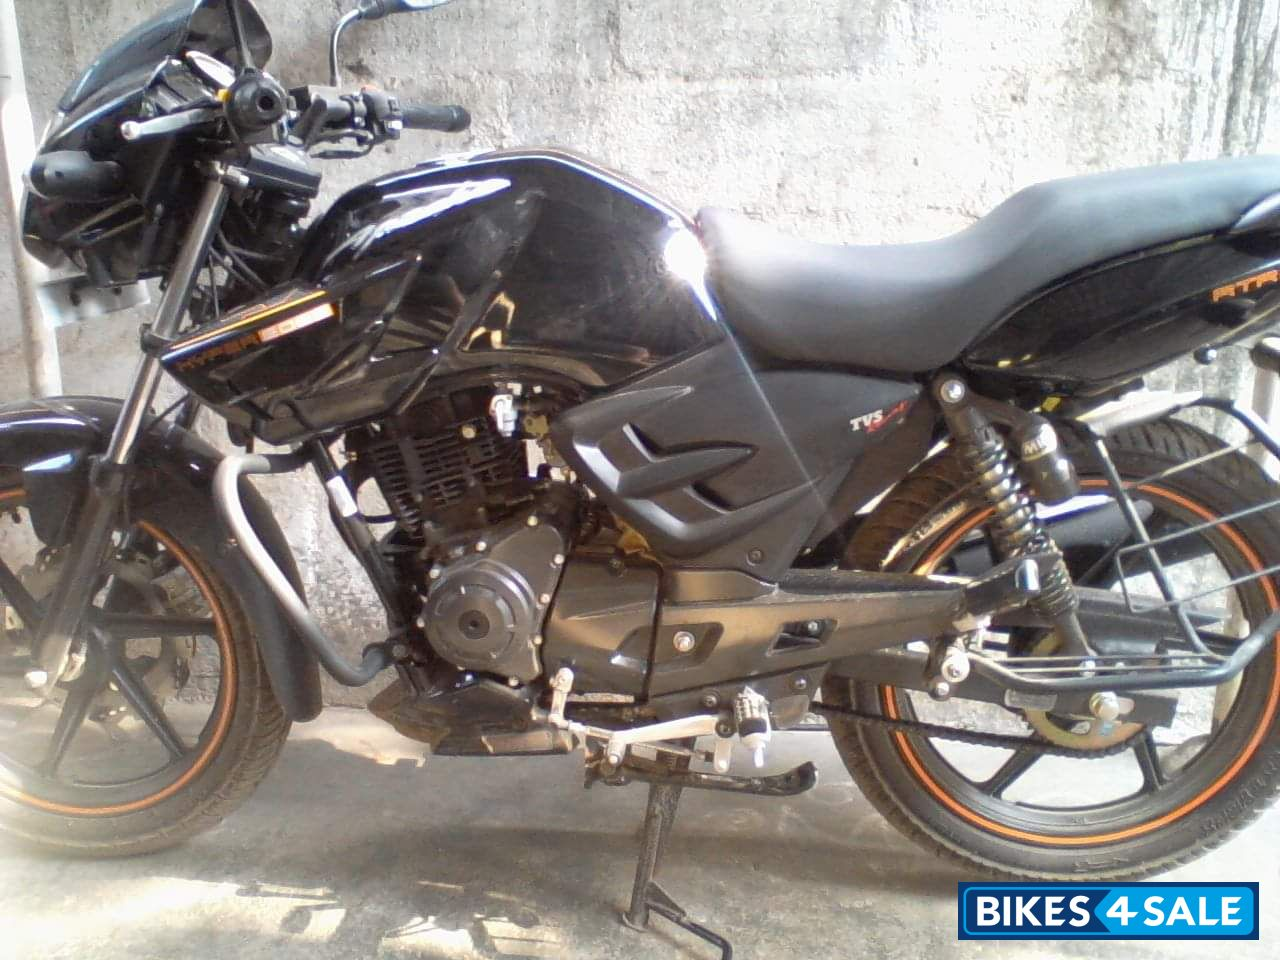 Used 2012 Model Tvs Apache Rtr 160 For Sale In Chennai Id